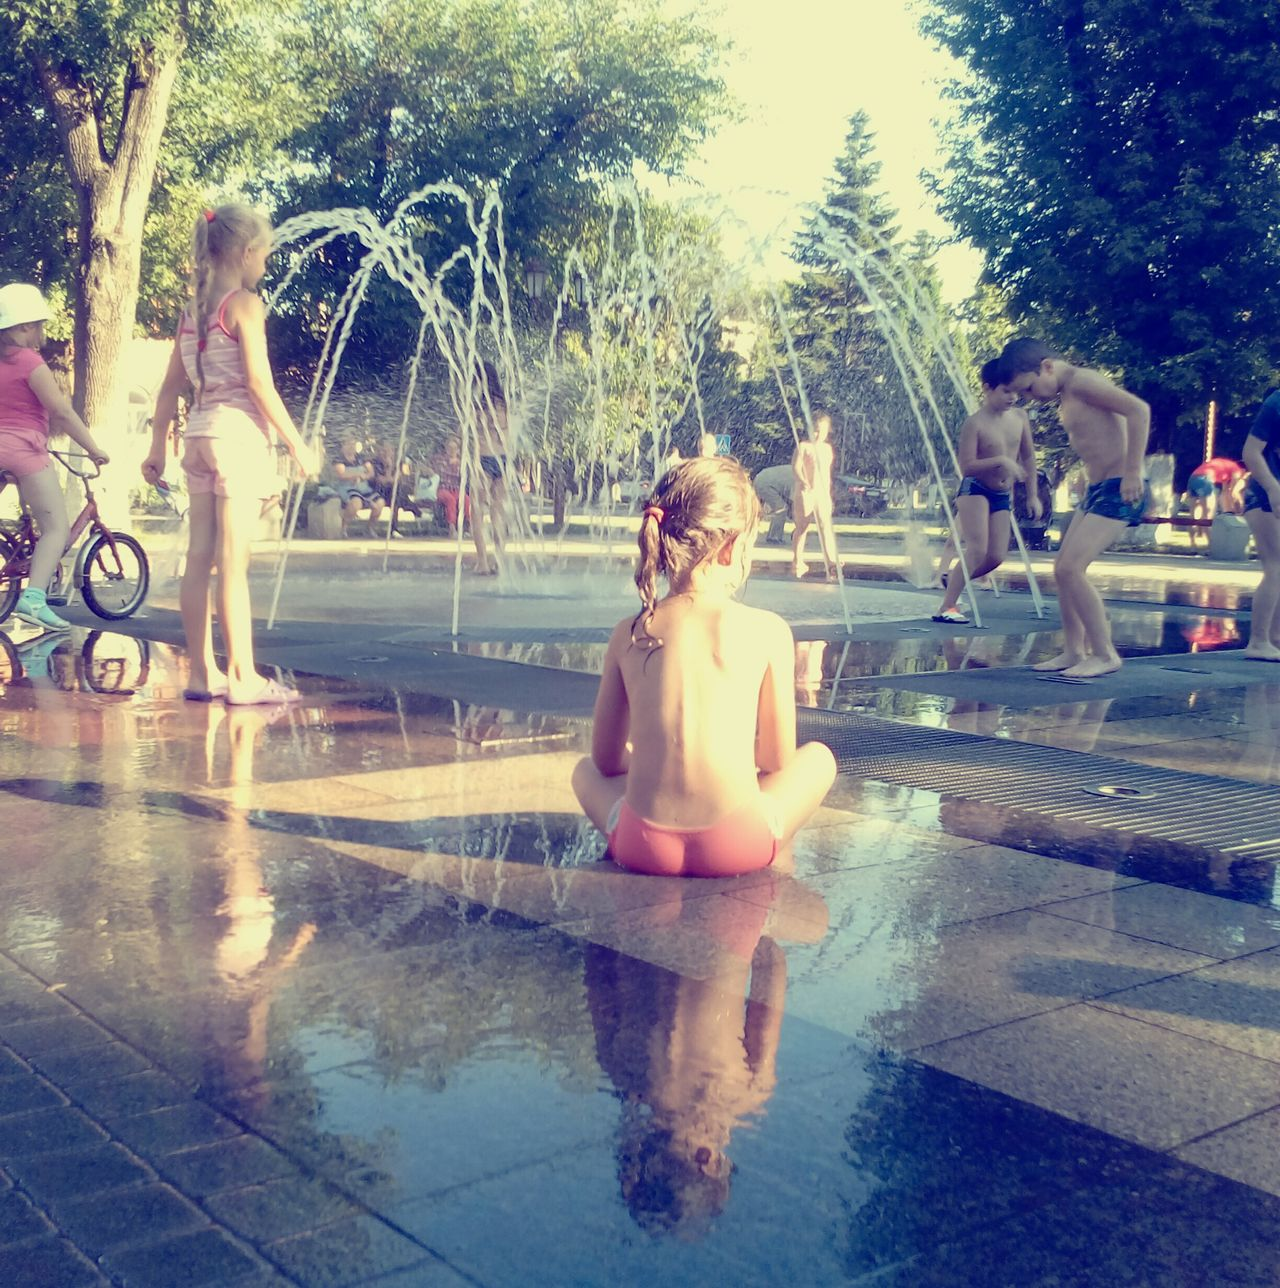 Children Summer Holidays Colour Of Life Armavir,Russia Relaxing Enjoying Life Enjoying The Moment Enjoying Time Joyful Joy Joy Of Life Childhood Childish My Favorite Place